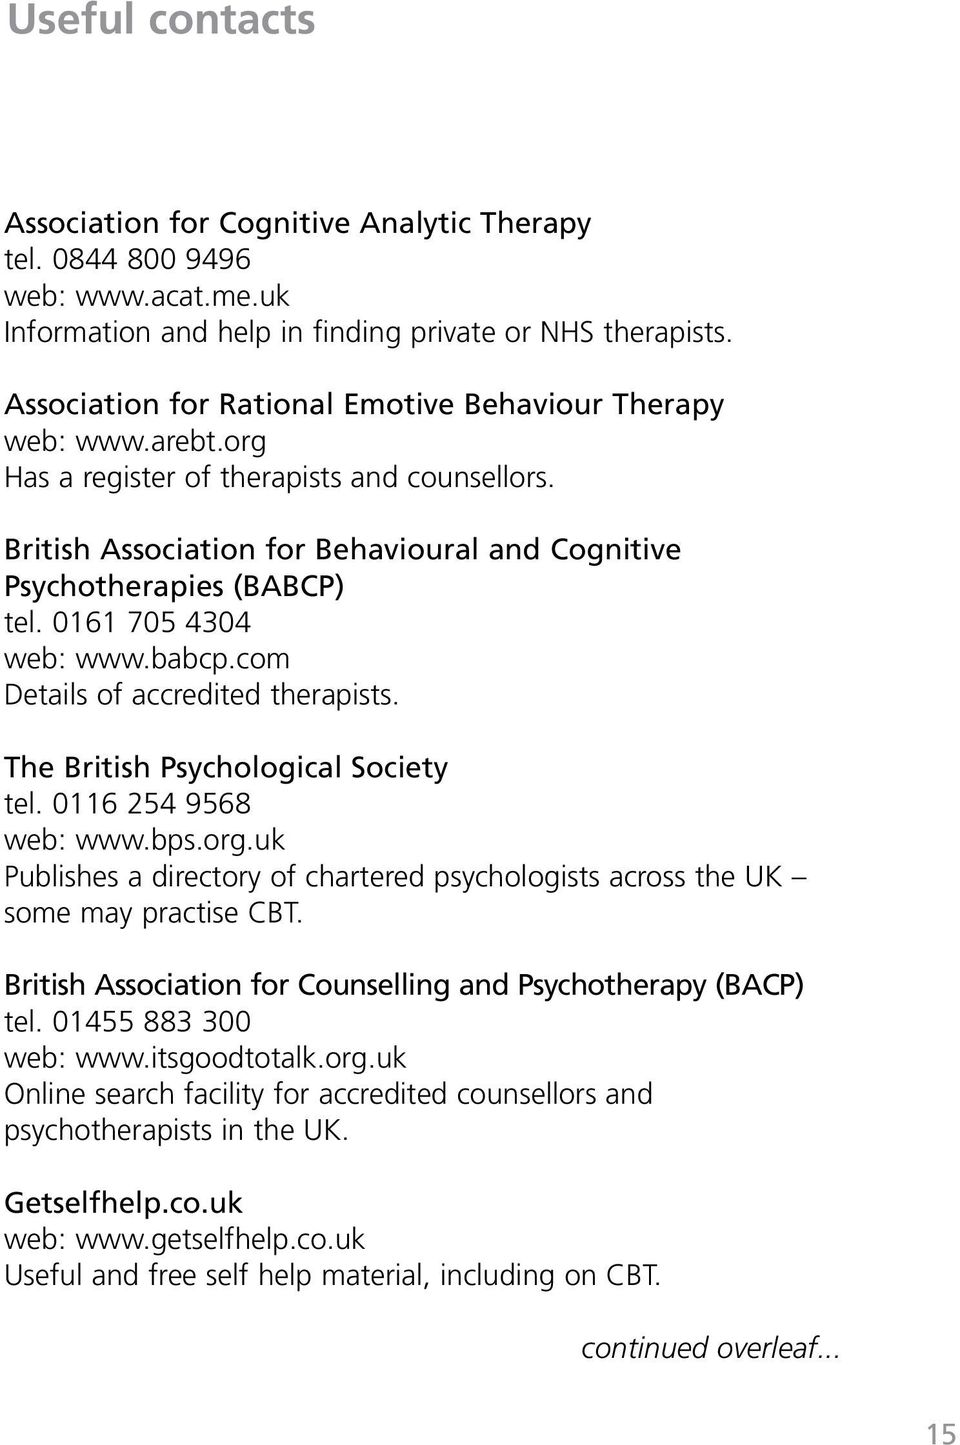 0161 705 4304 web: www.babcp.com Details of accredited therapists. The British Psychological Society tel. 0116 254 9568 web: www.bps.org.